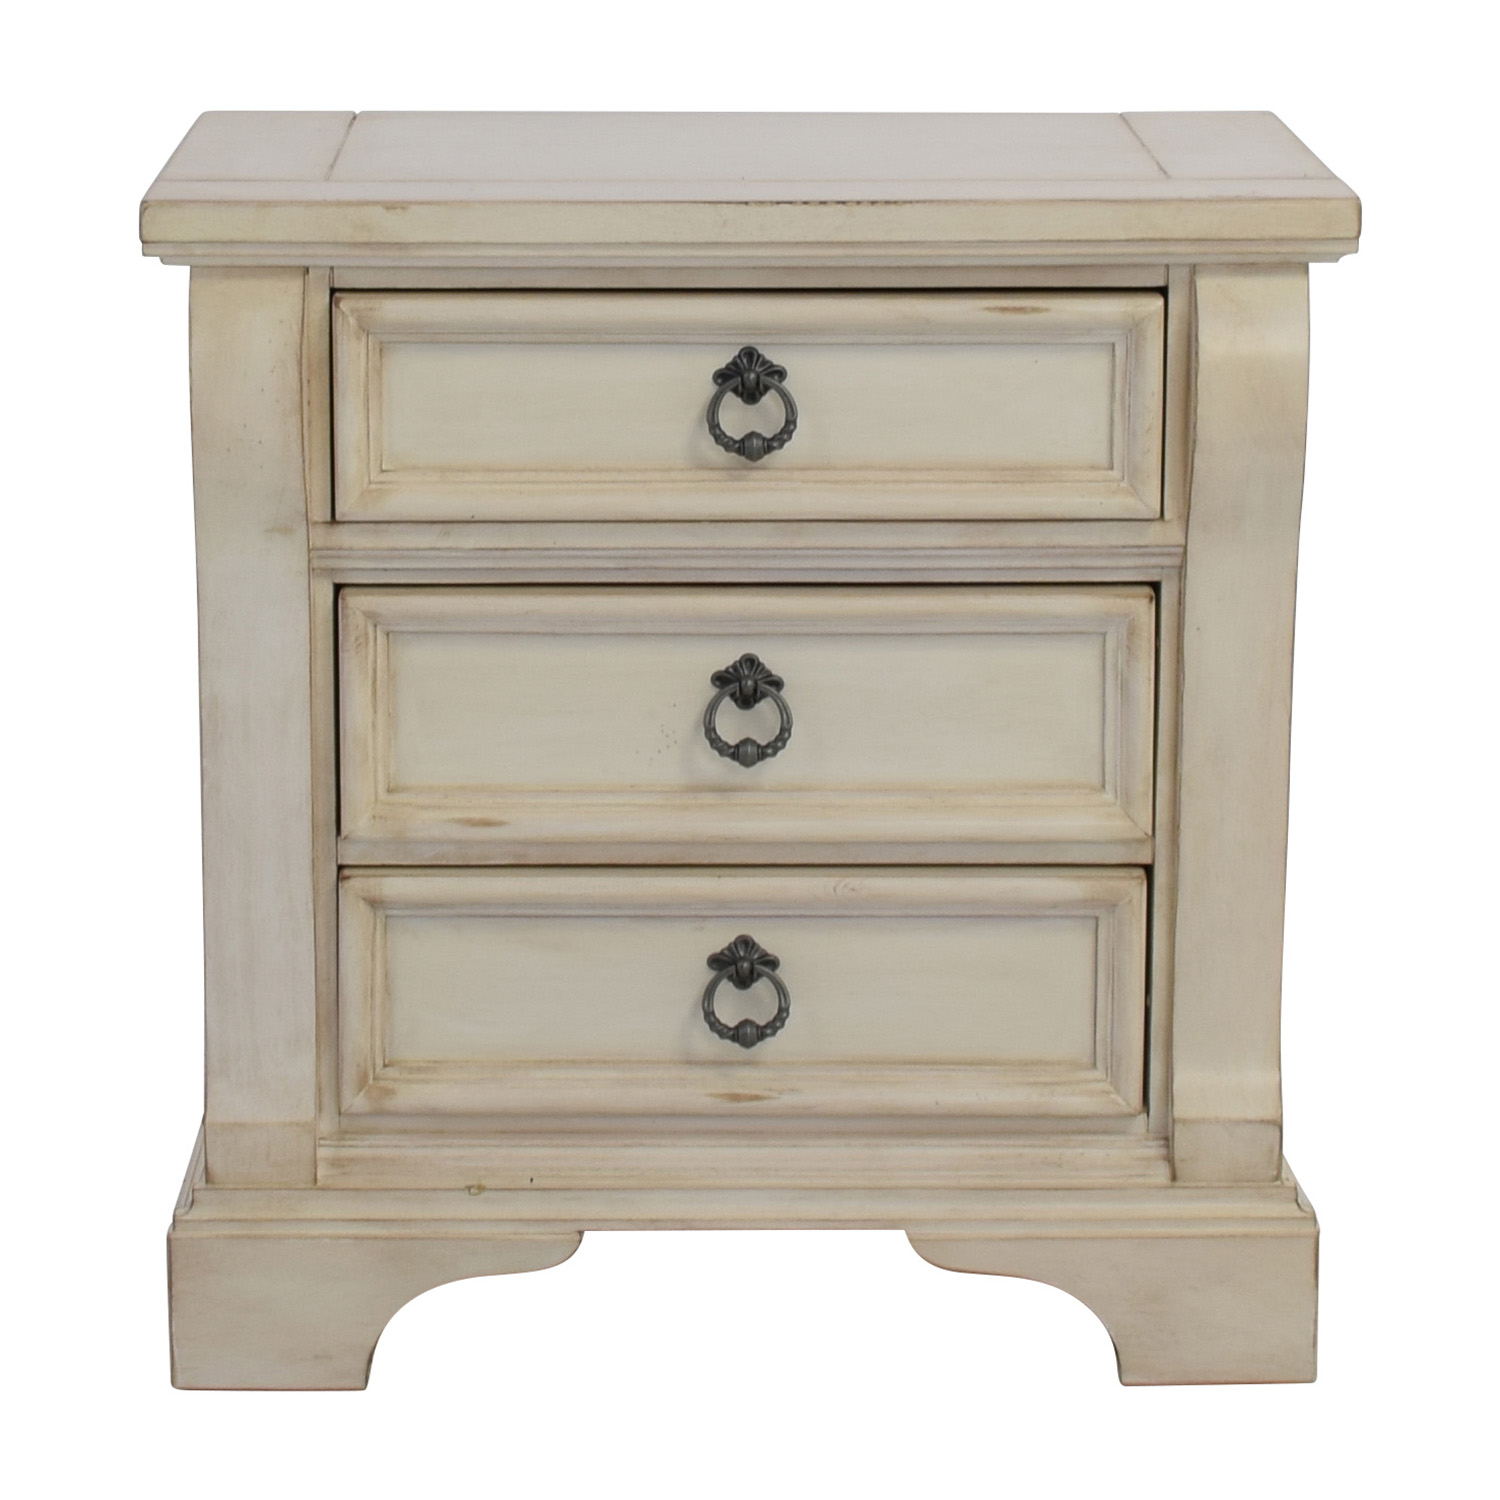 The Classy Home The Classy Home Antique White Nightstand on sale